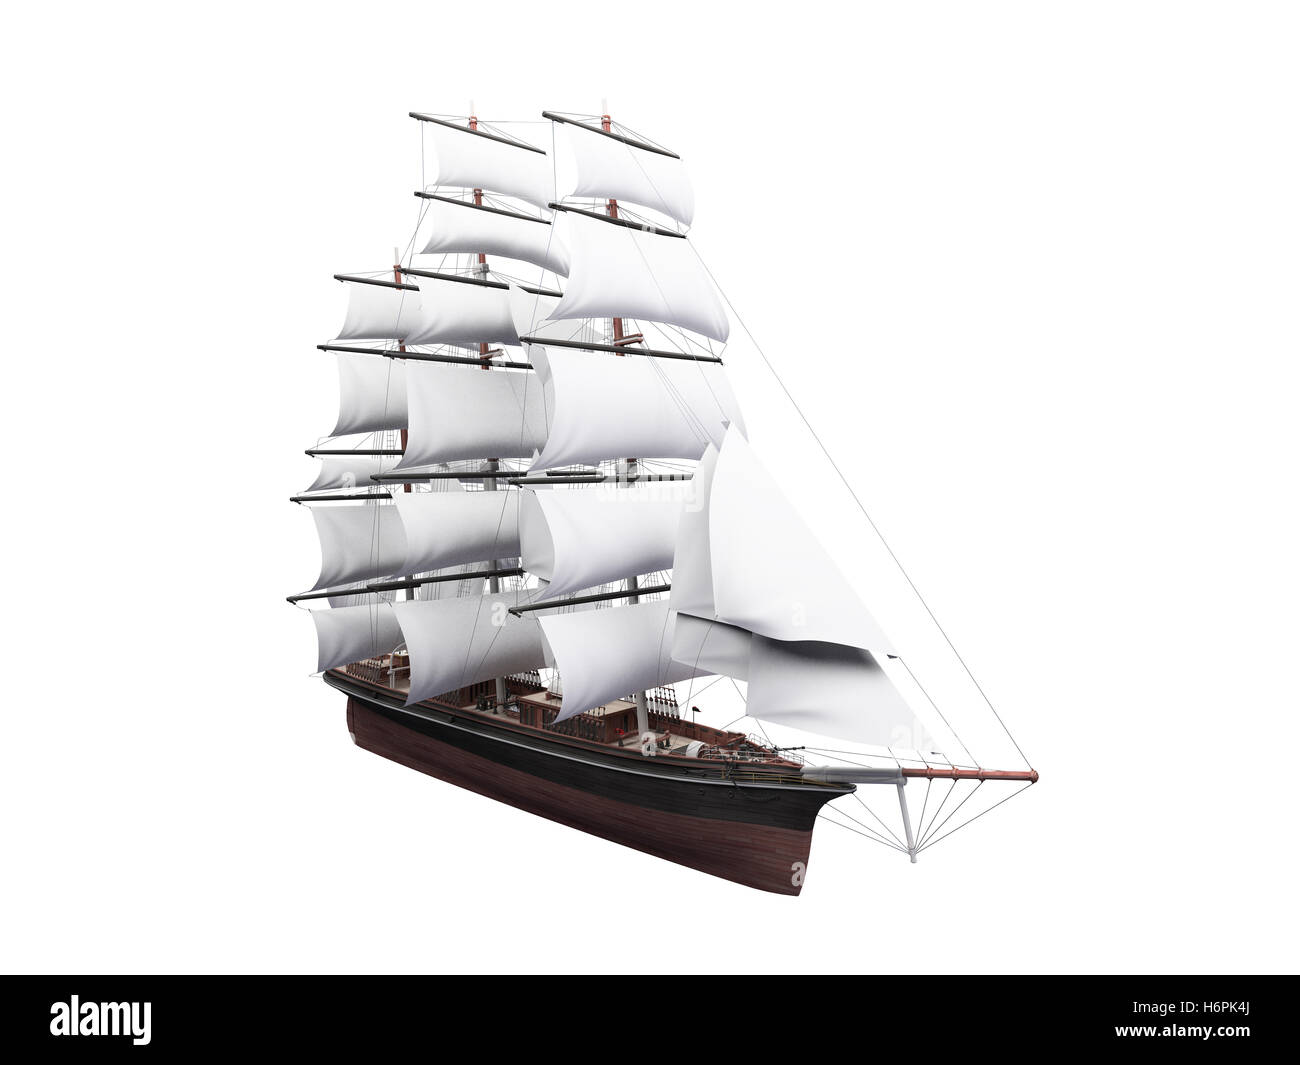 isolated traffic transportation toy transport illustration vessel sailing boat sailboat galley regatta boat nautical - Stock Image